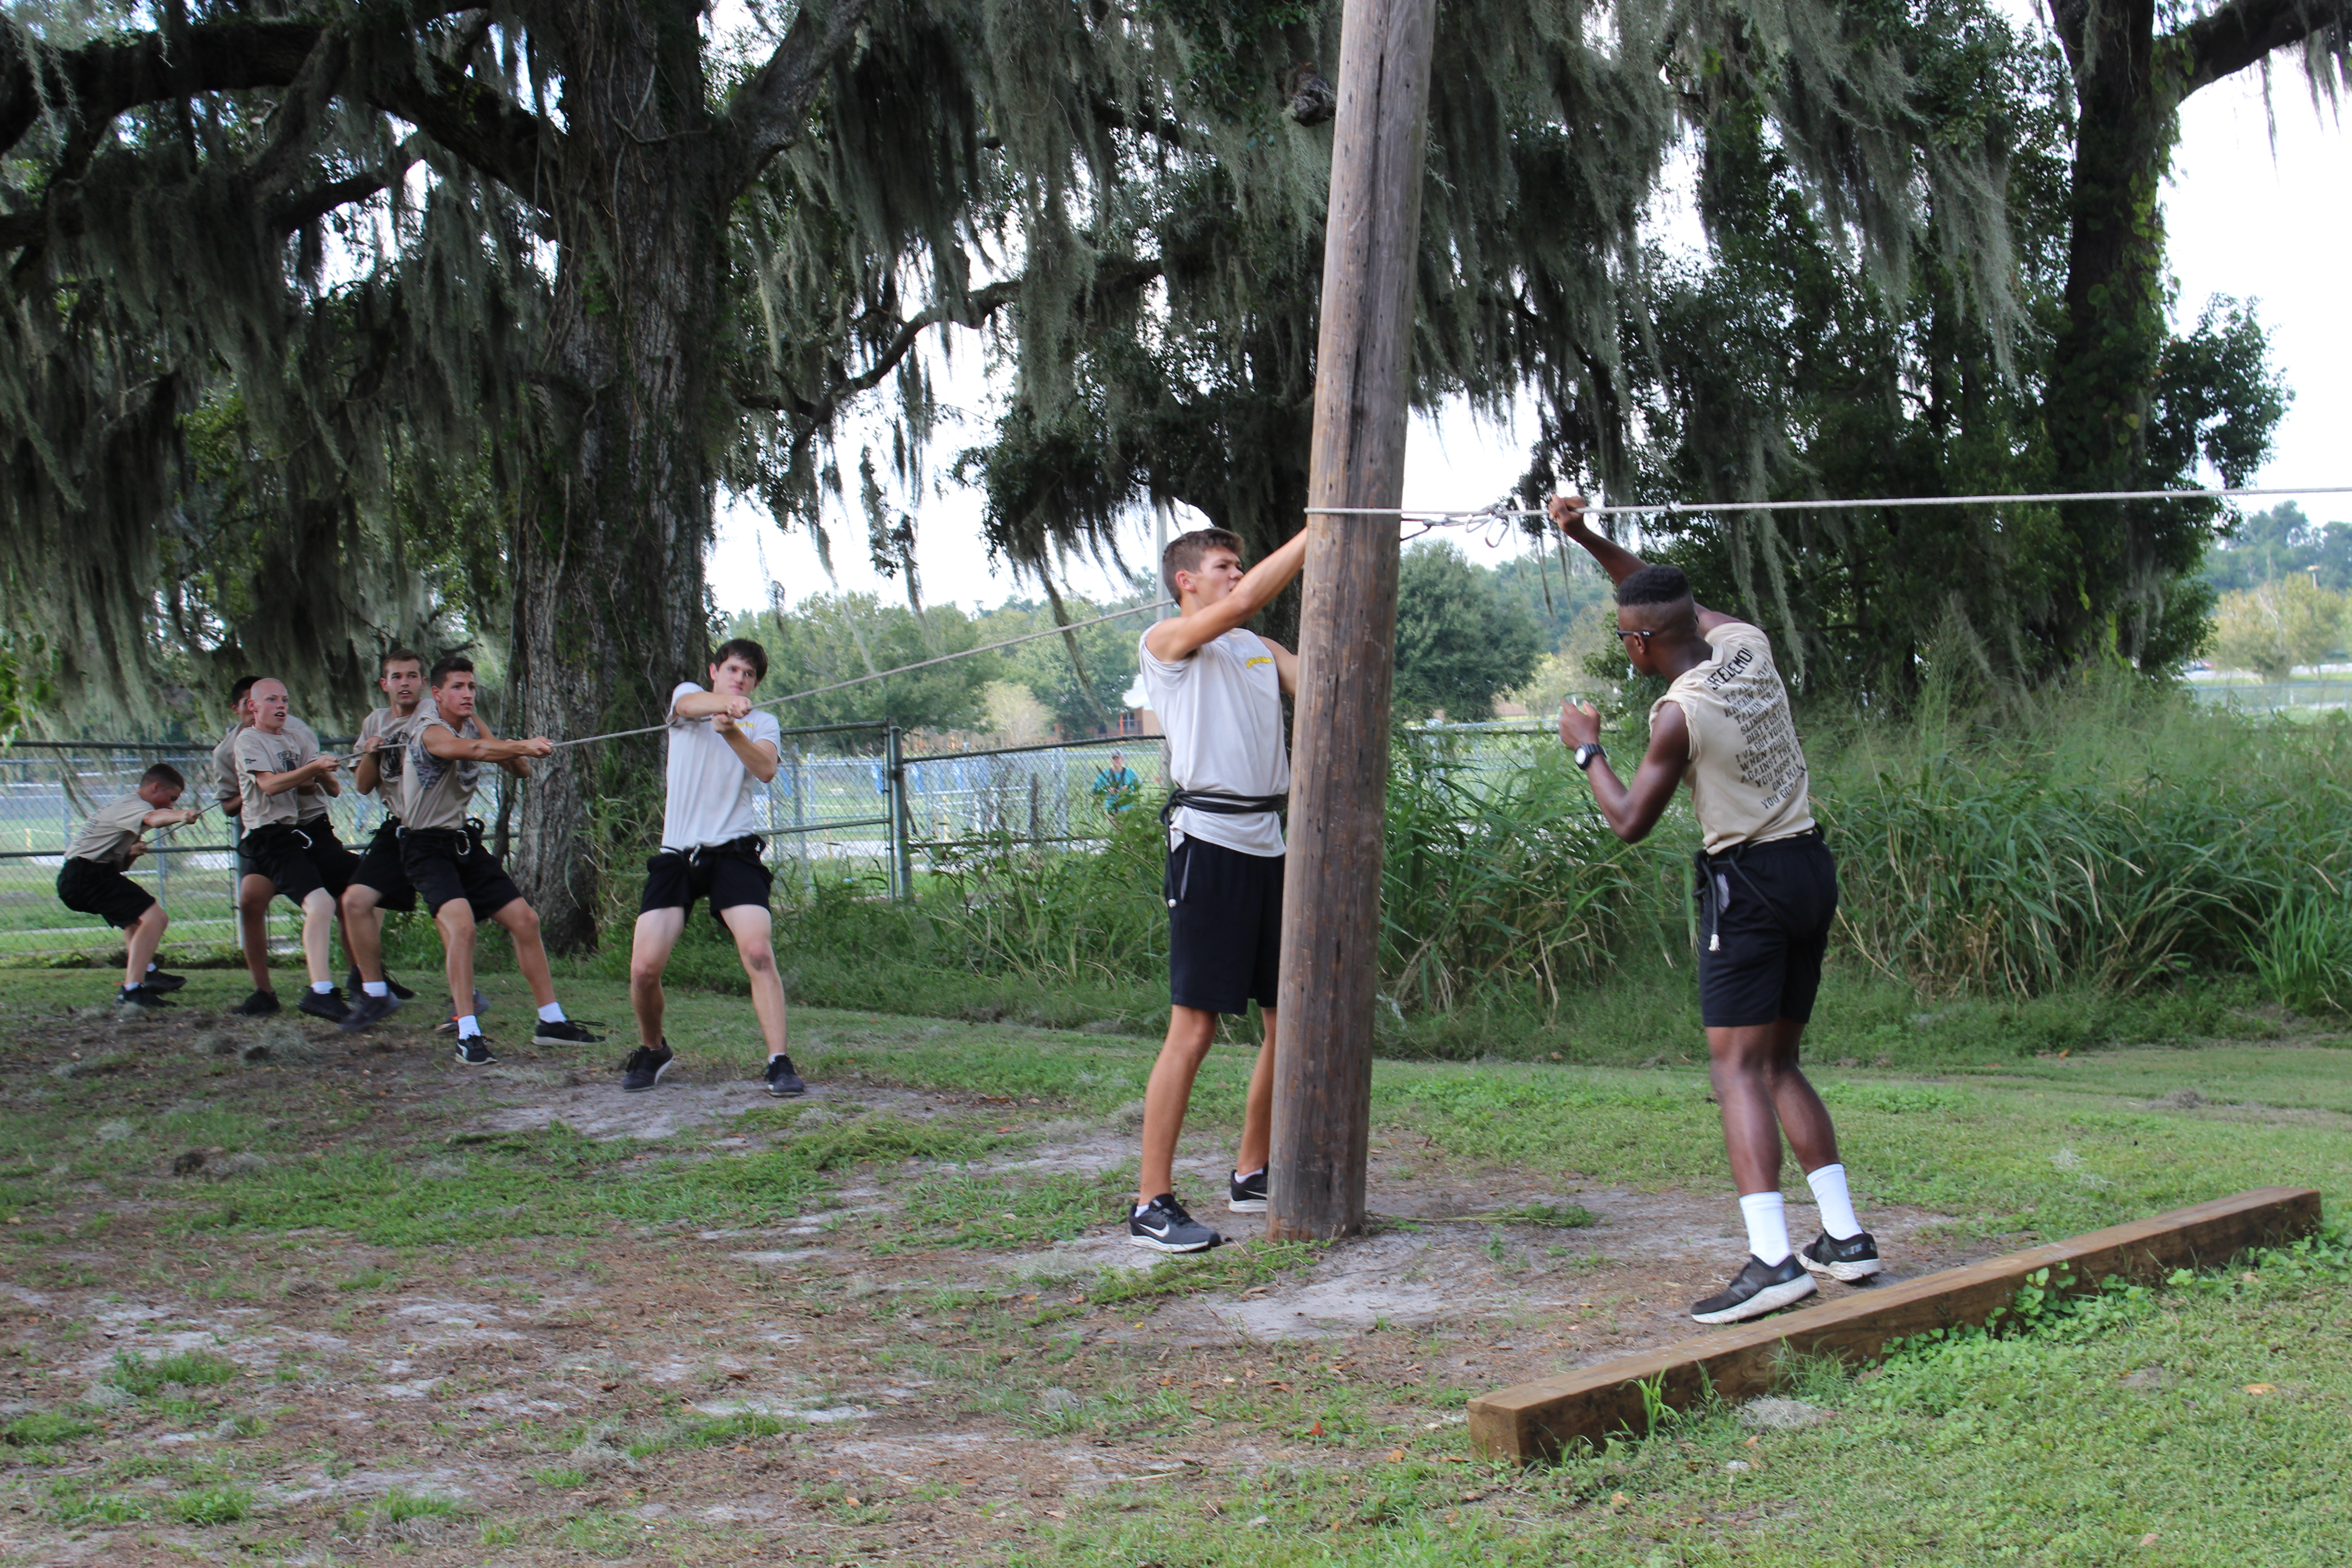 Students working on tying a suspension rope to a wooden pole during a competitive drill.